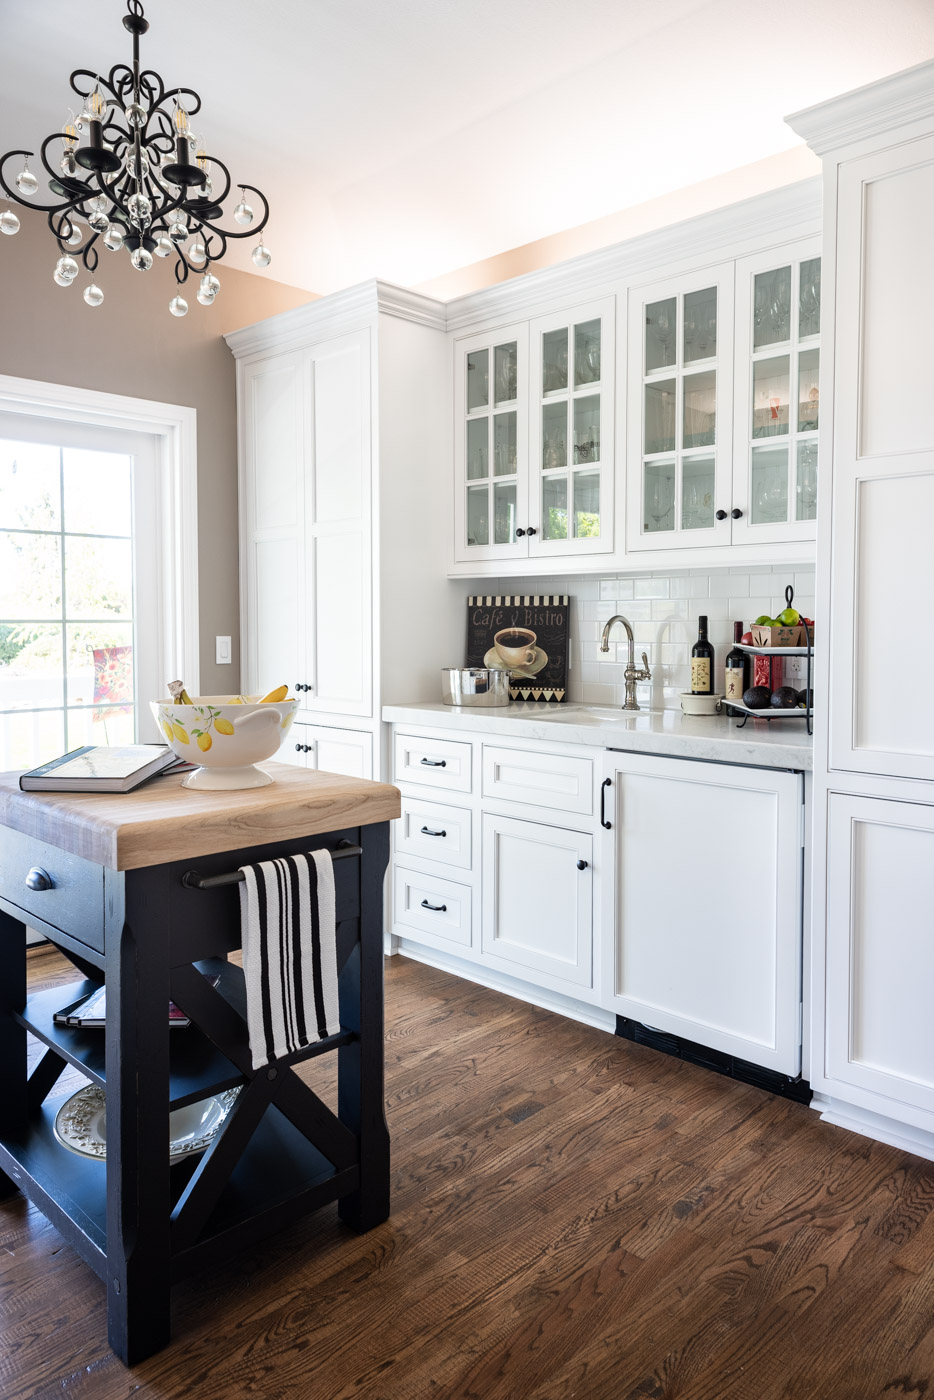 Transitional Country Cottage style kitchen with tea room home bar and butcher block island